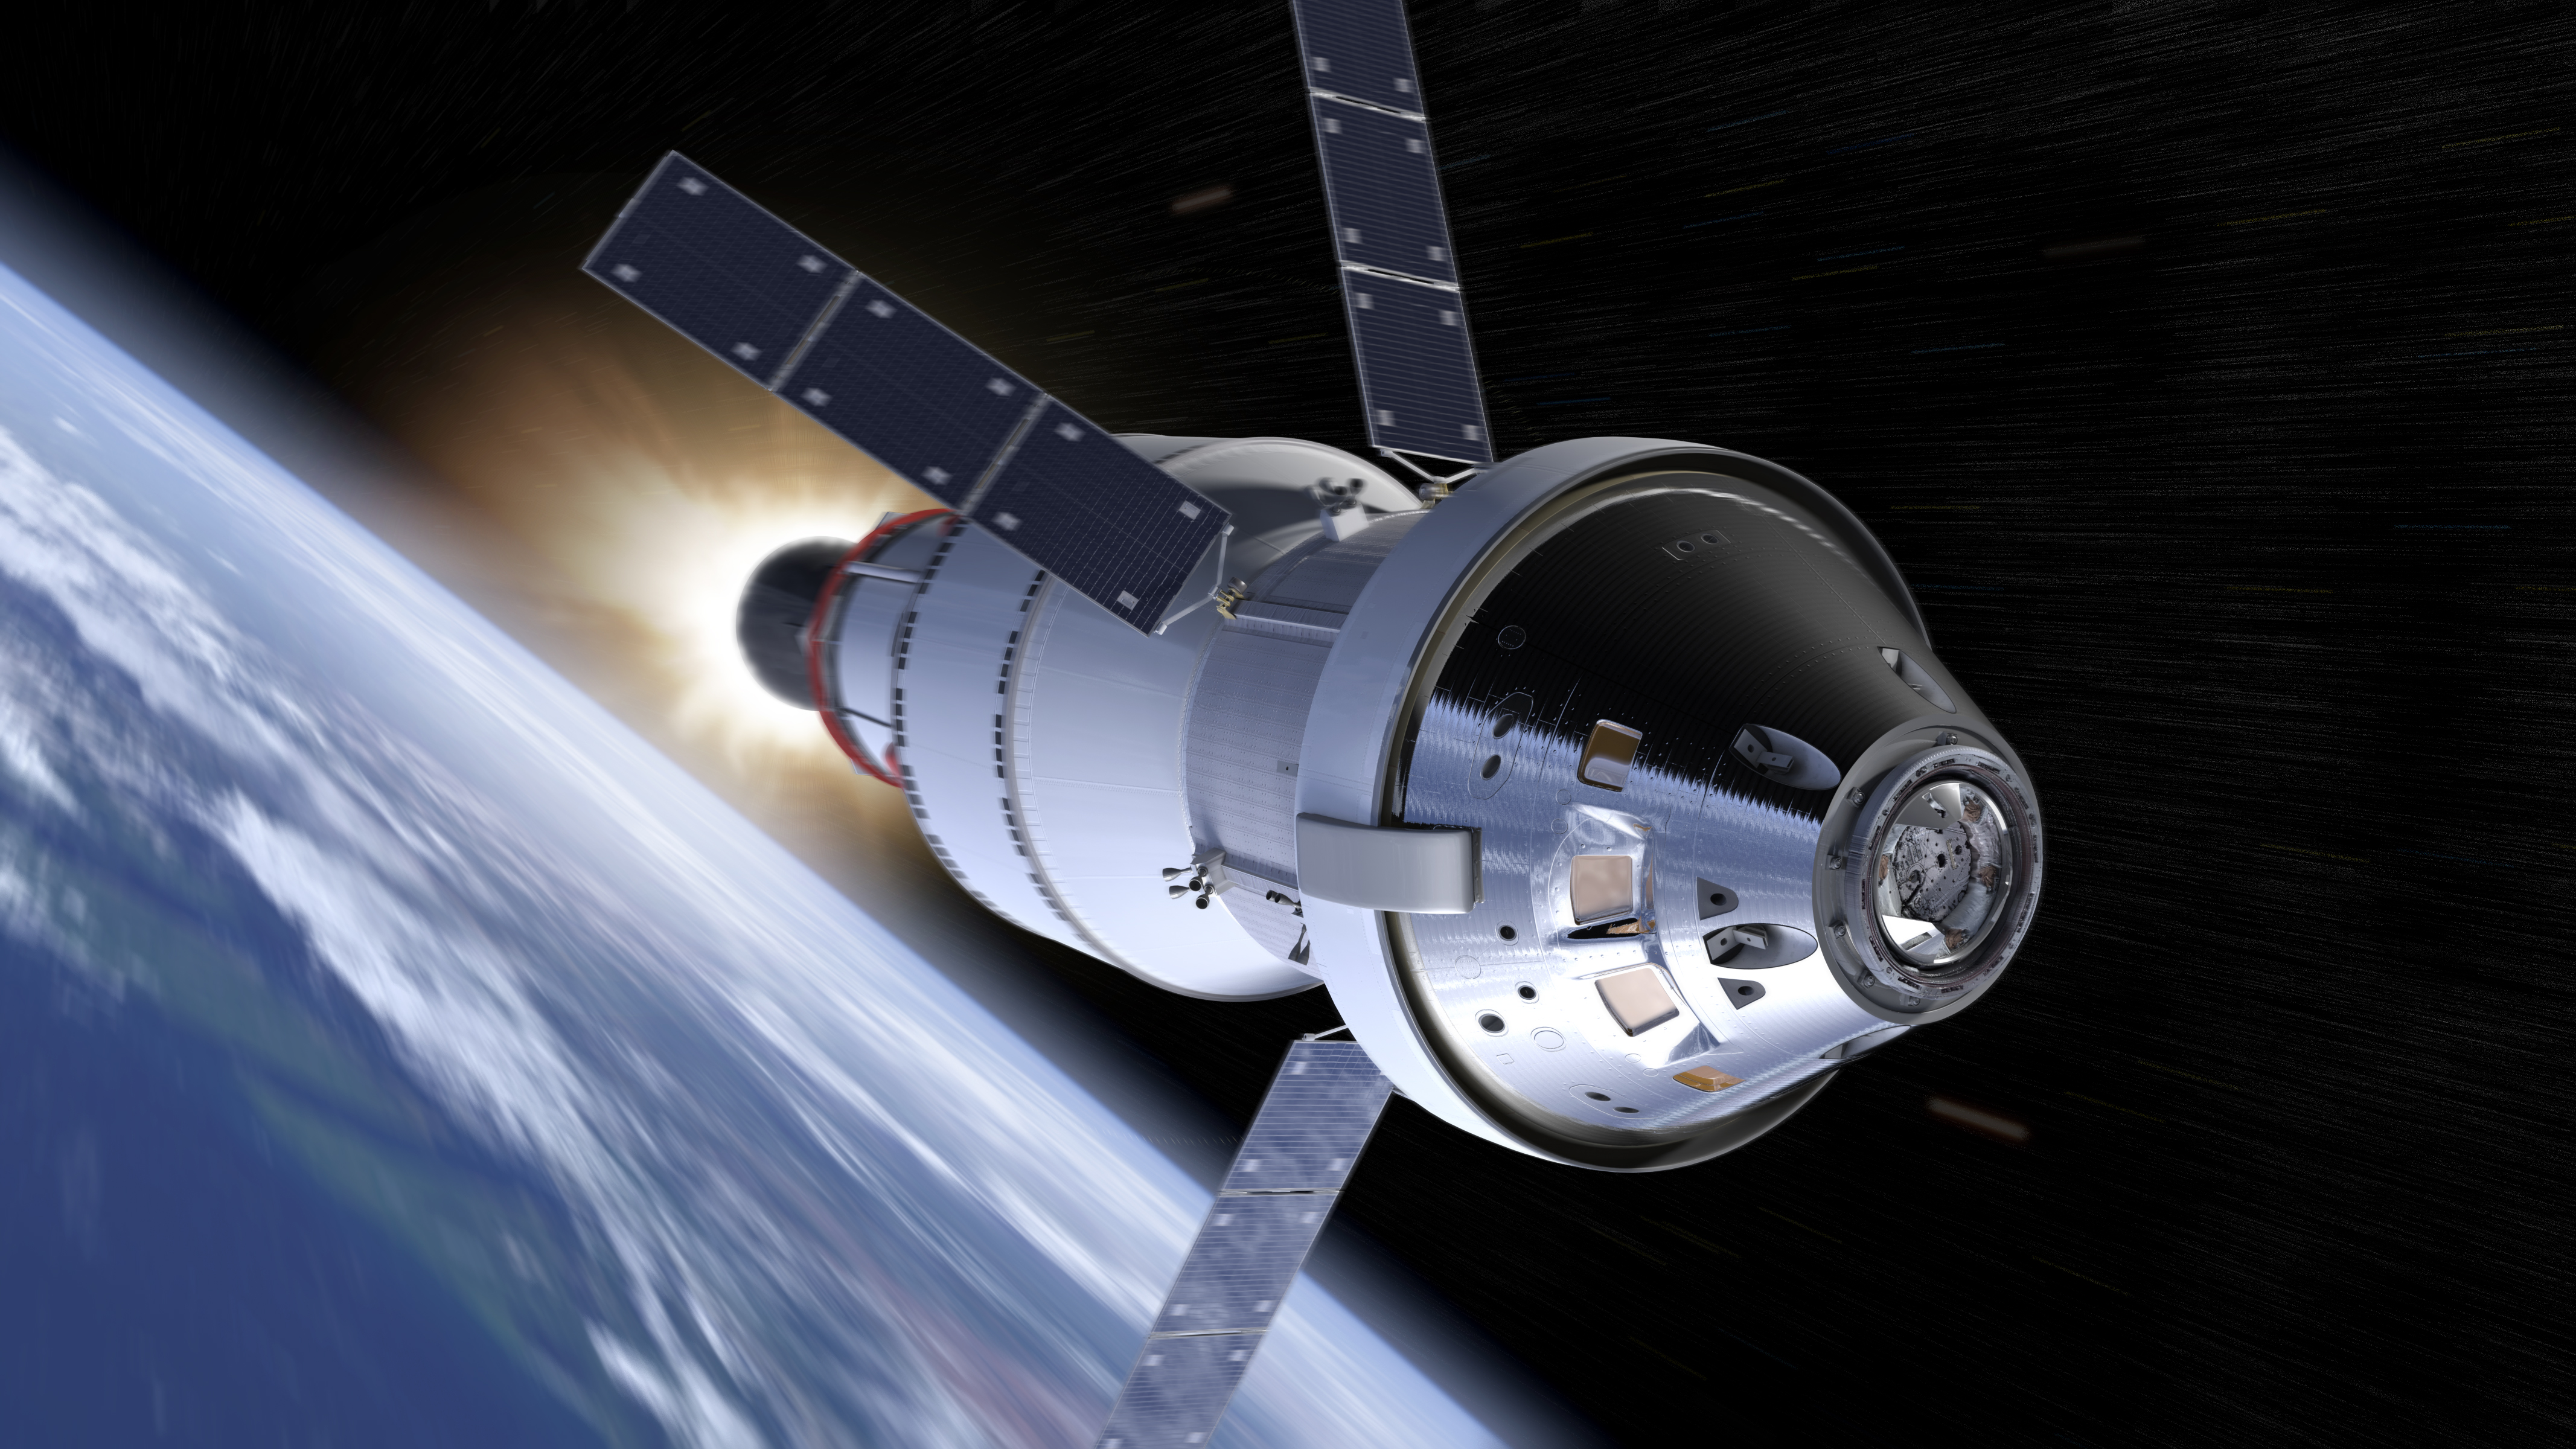 Image result for spacecraft